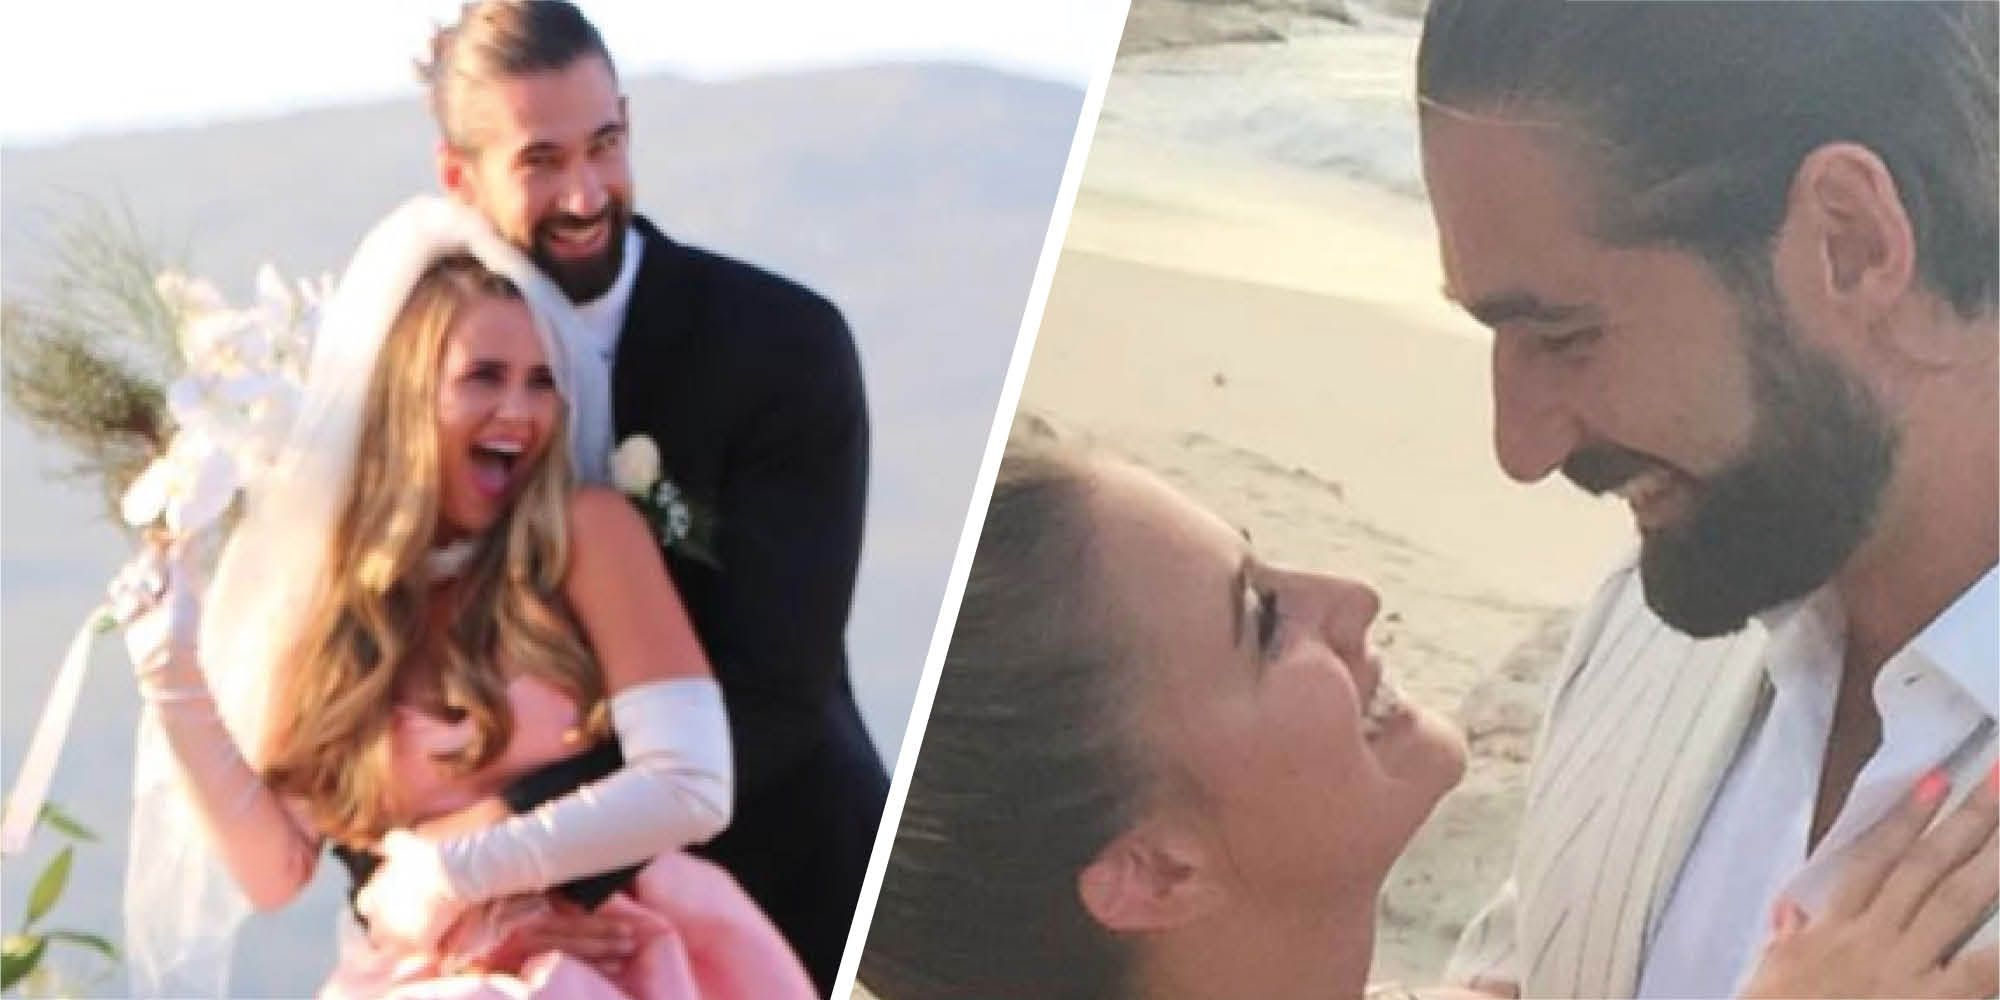 The Bachelor UK Photo: The Bachelor UK's Alex And Alicia Reveal They Briefly